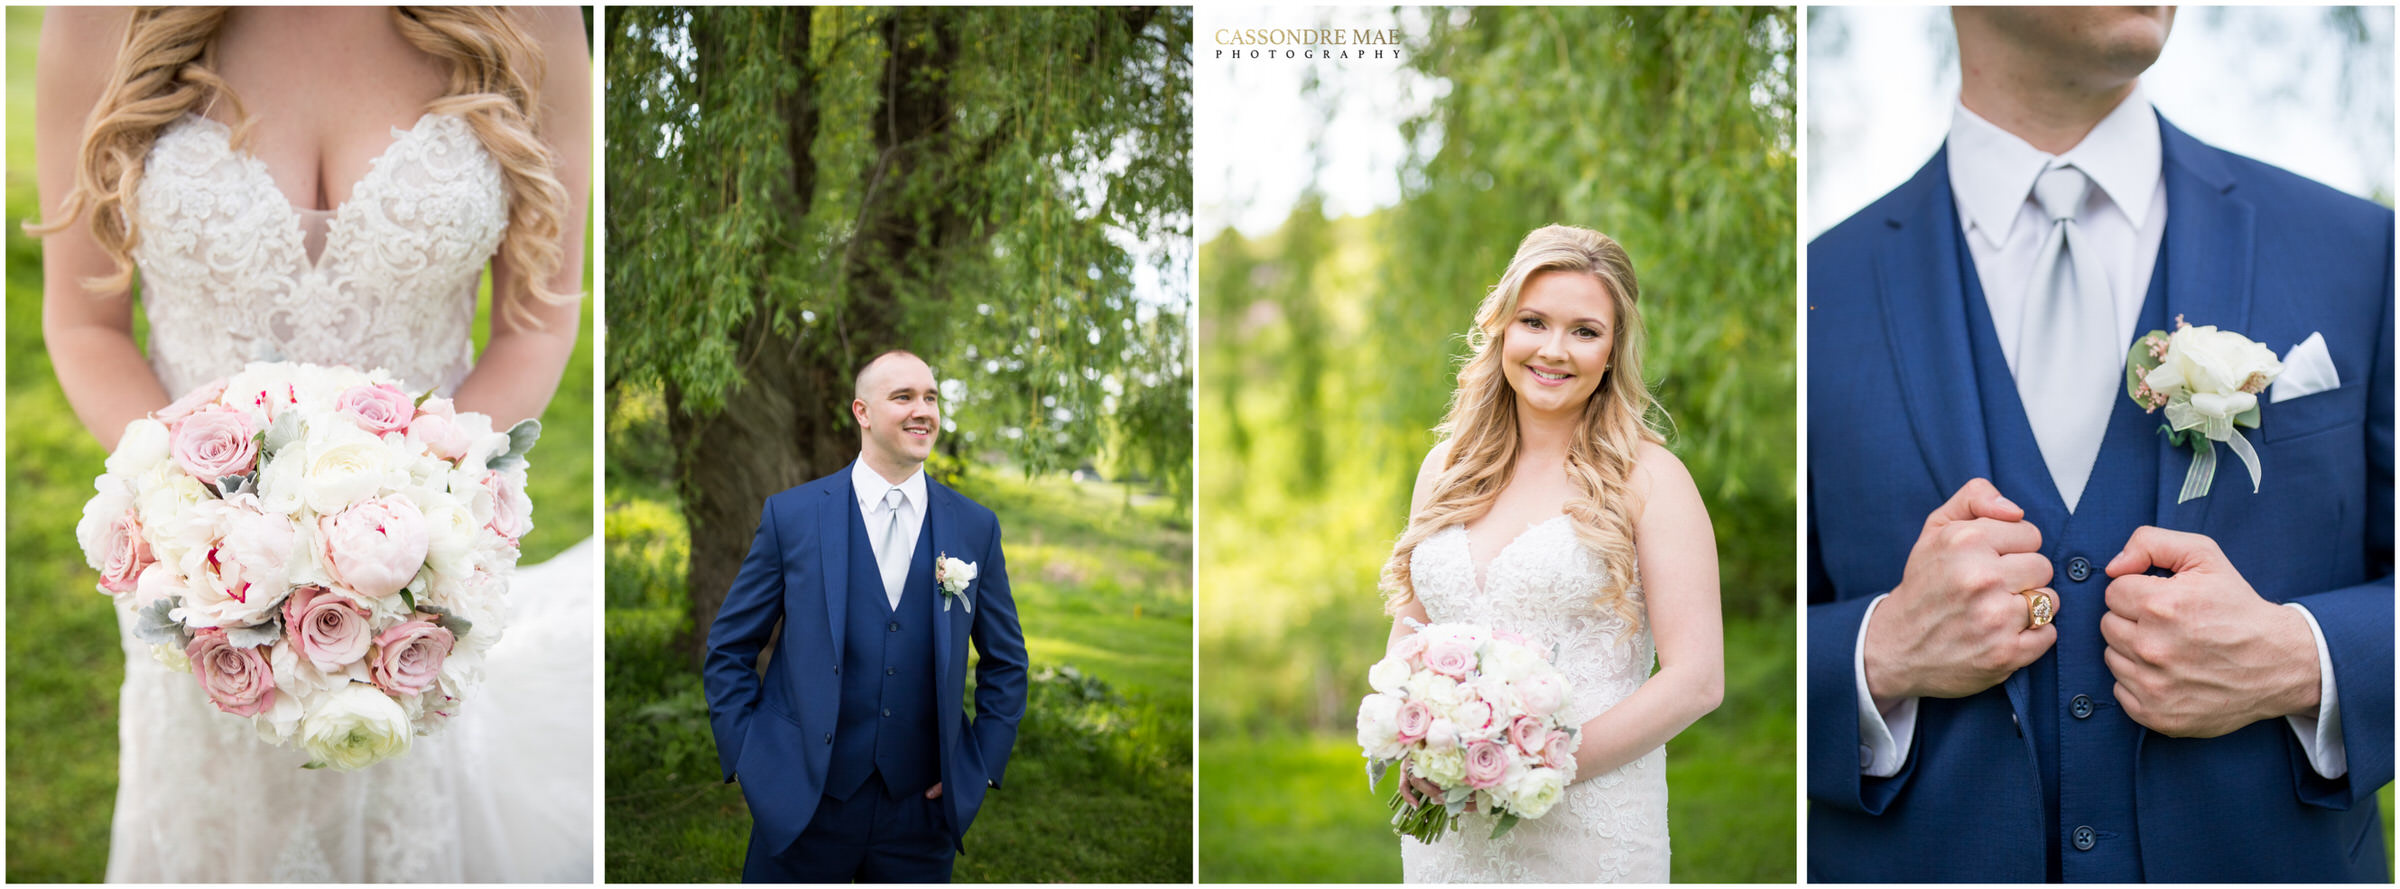 Cassondre Mae Photography West Hills Country Club Wedding